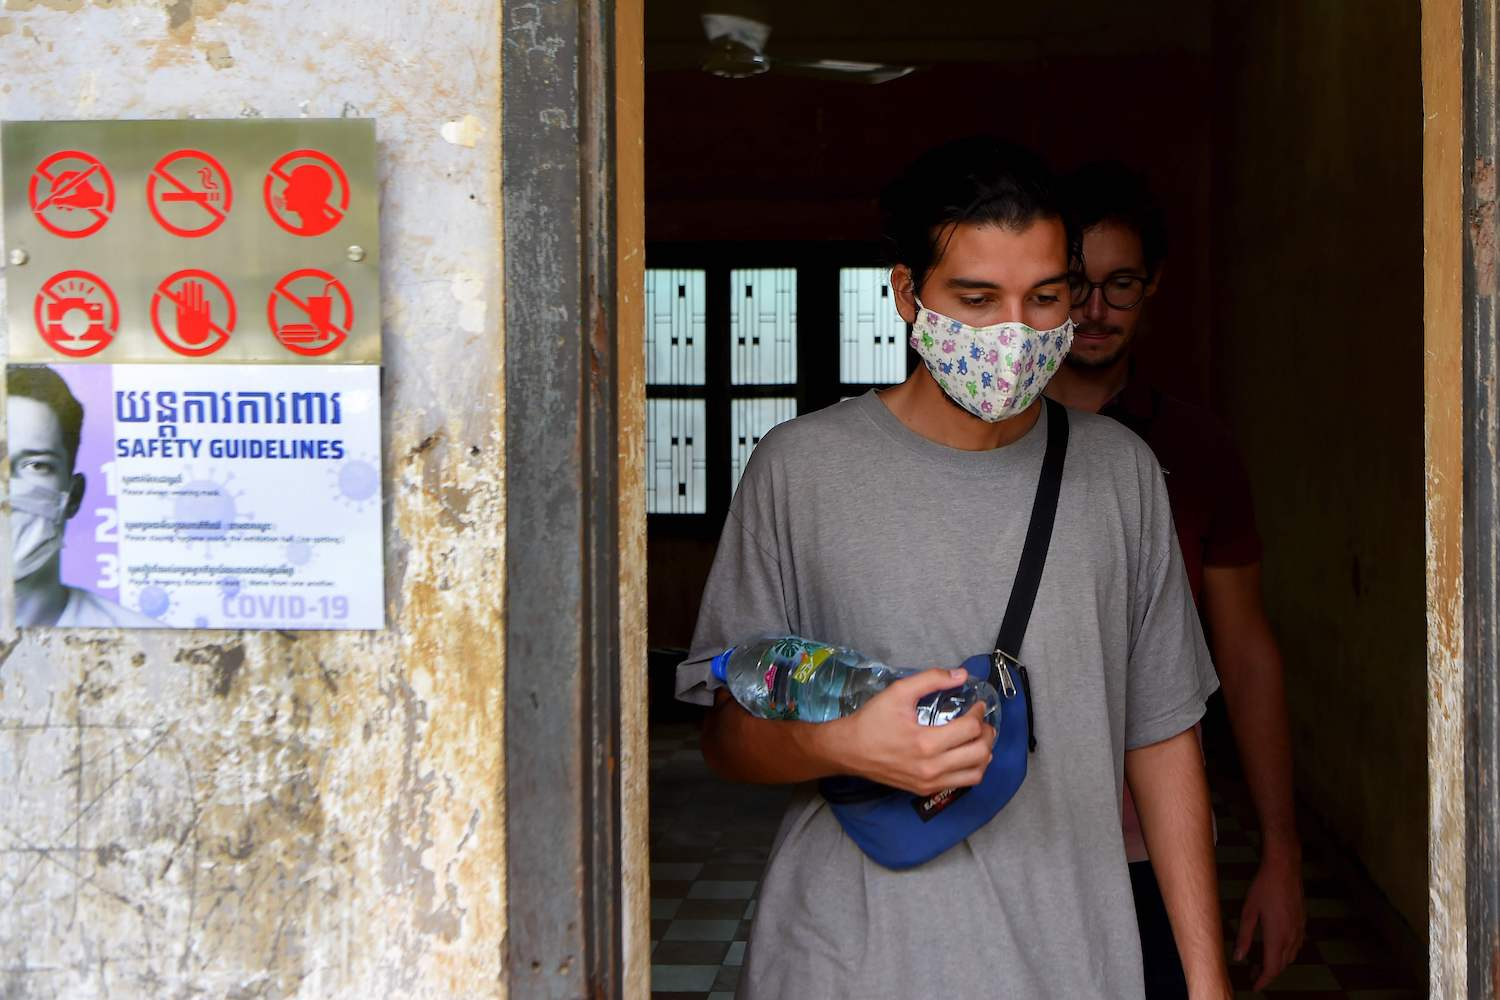 A tourist visits the reopened Tuol Sleng genocide museum in Phnom Penh on Monday. (AFP Photo)